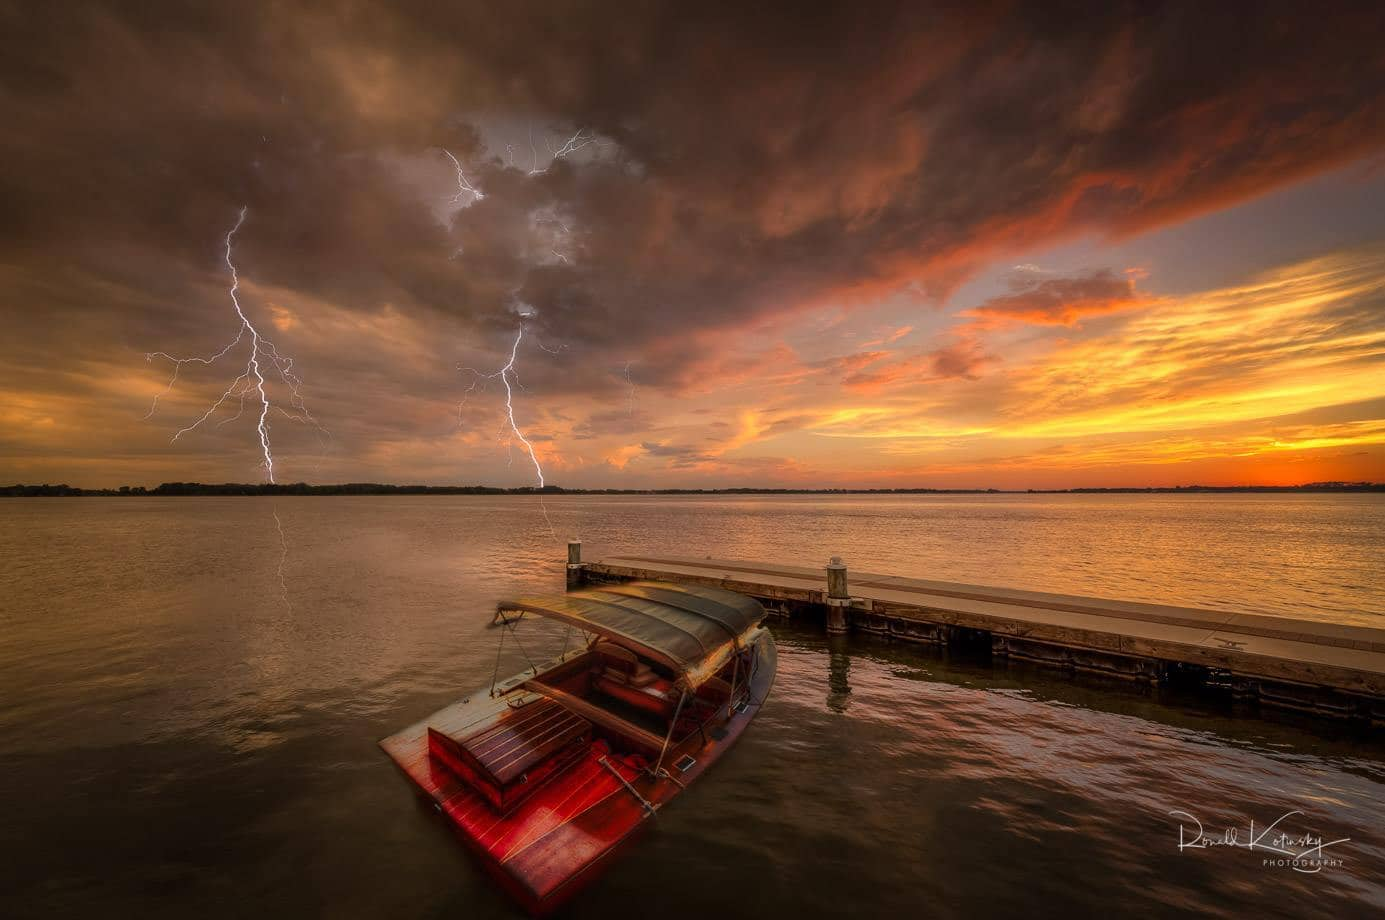 Twilight Lightning at the Dock - a composite of 3 of my favorite photos